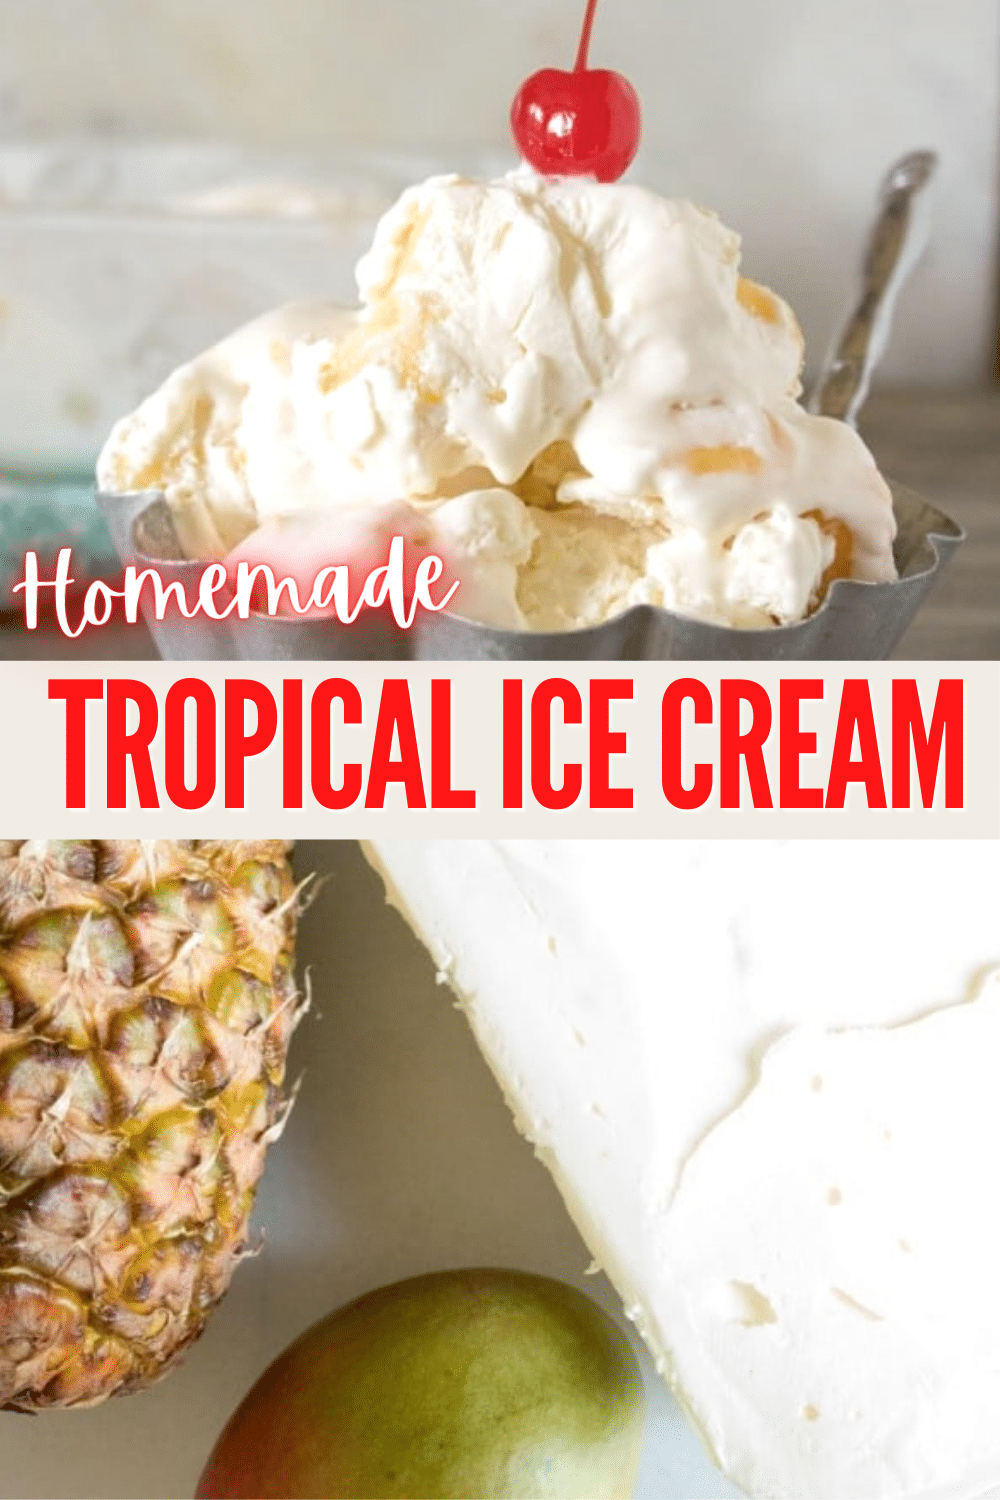 This 5-ingredient homemade tropical ice cream is super easy to make. It's a dessert that makes you feel like you're on vacation! #easydessert #icecream via @wondermomwannab